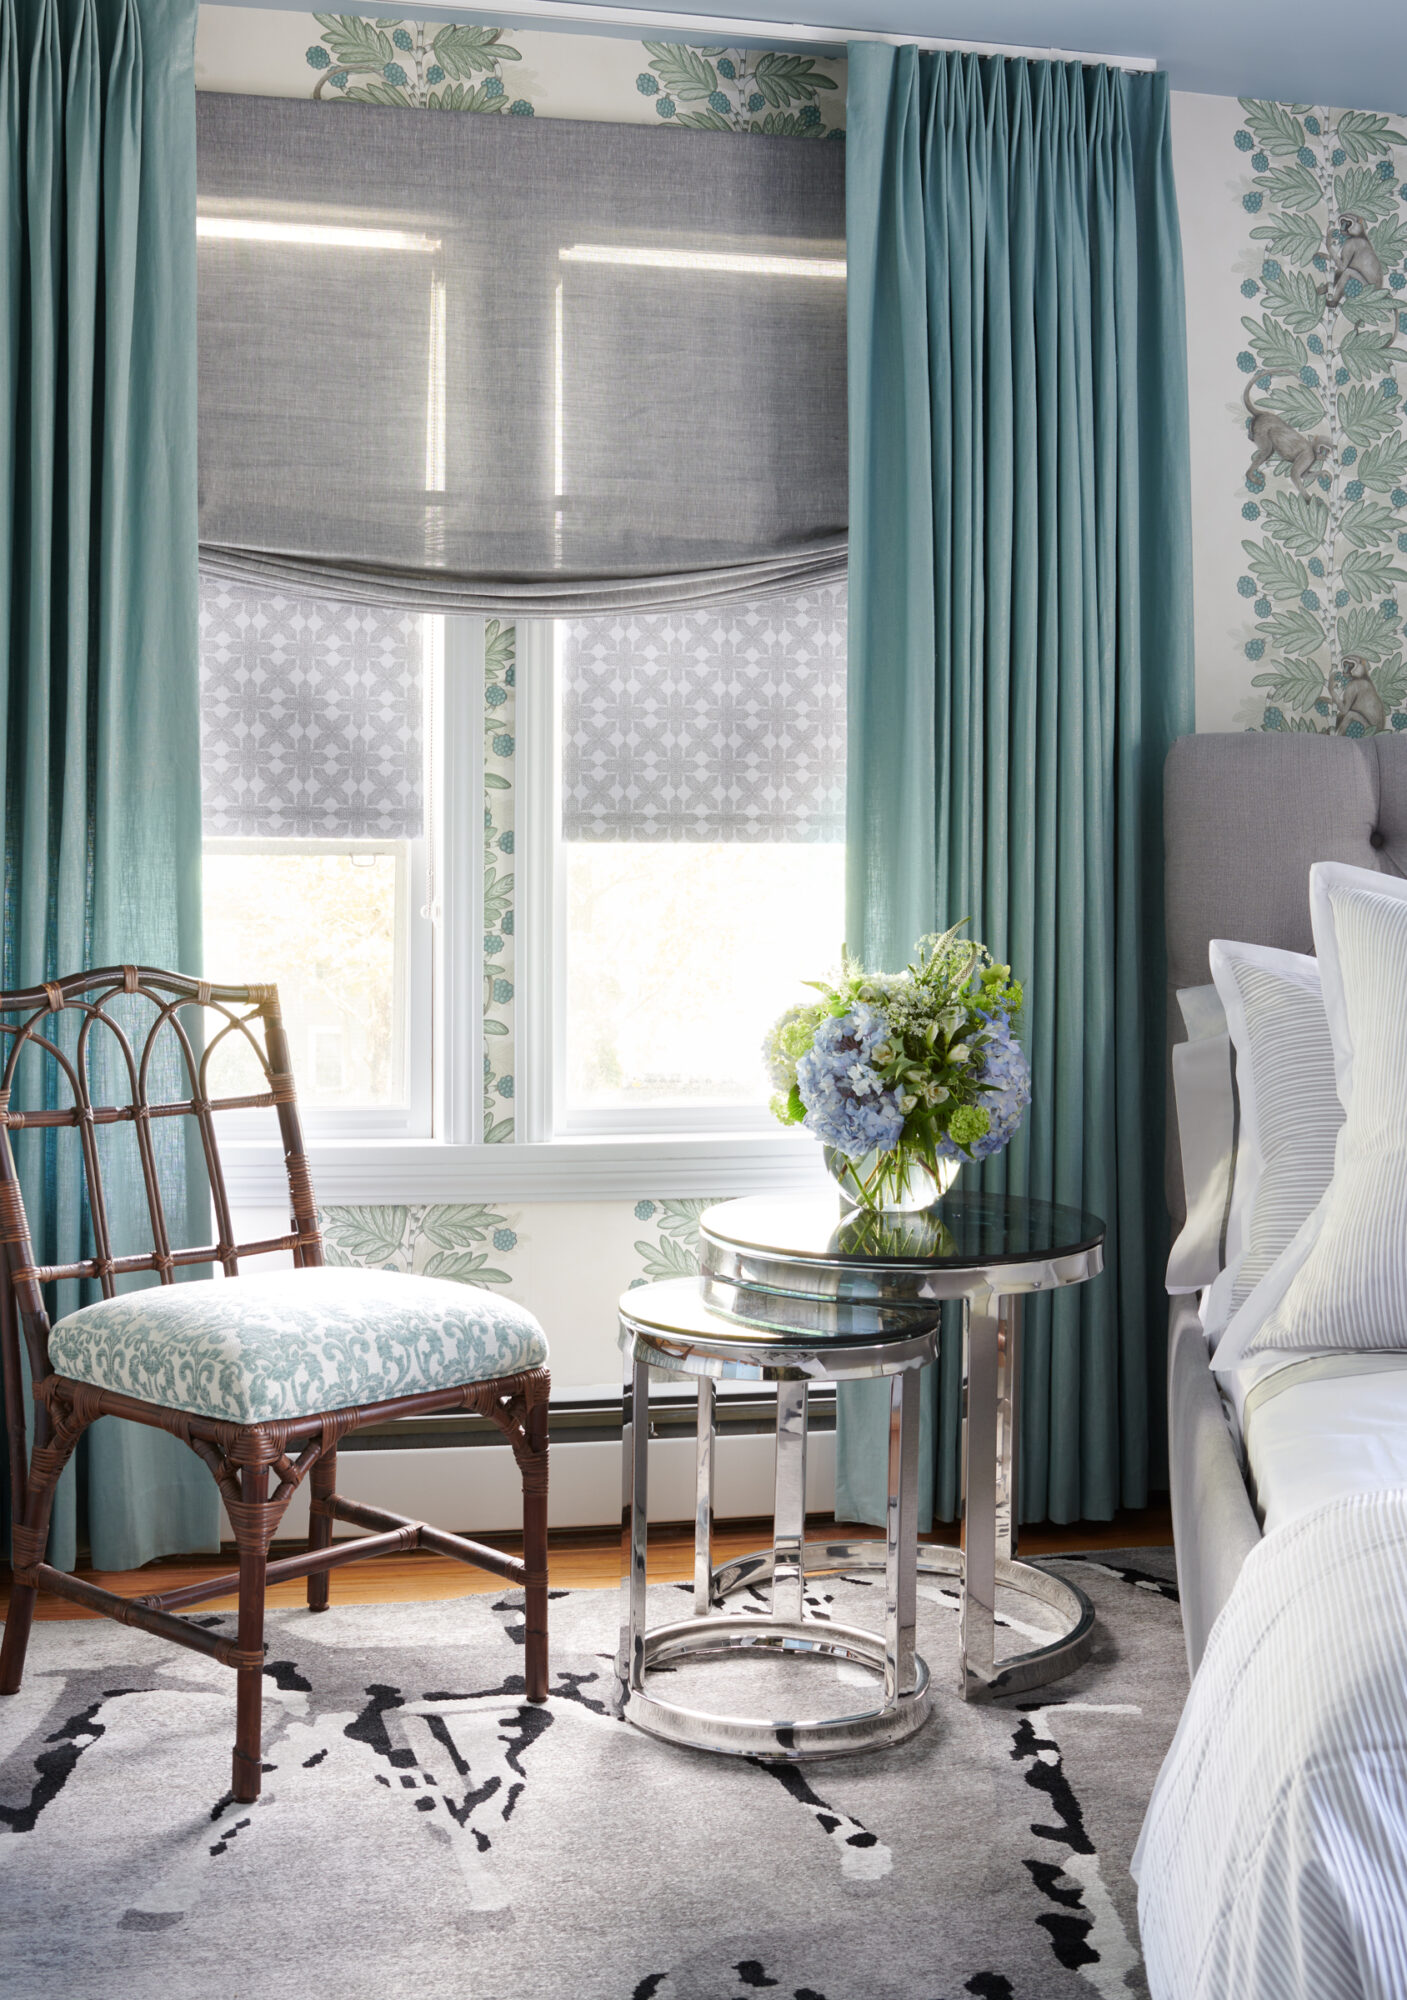 teal and gray bedroom with accent chair